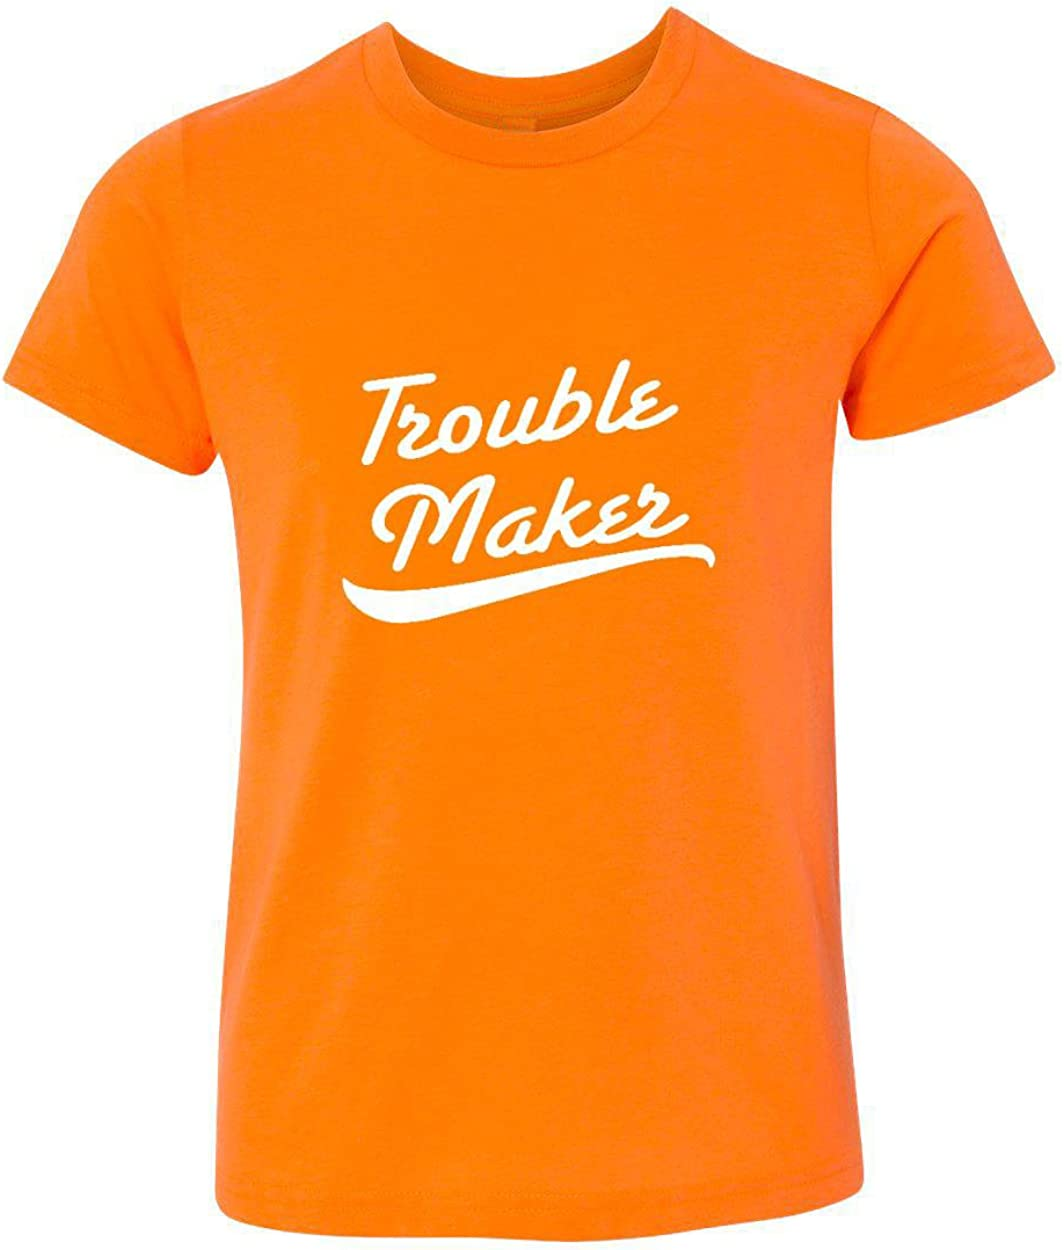 Marky G apparel Boys Trouble Maker T-Shirt